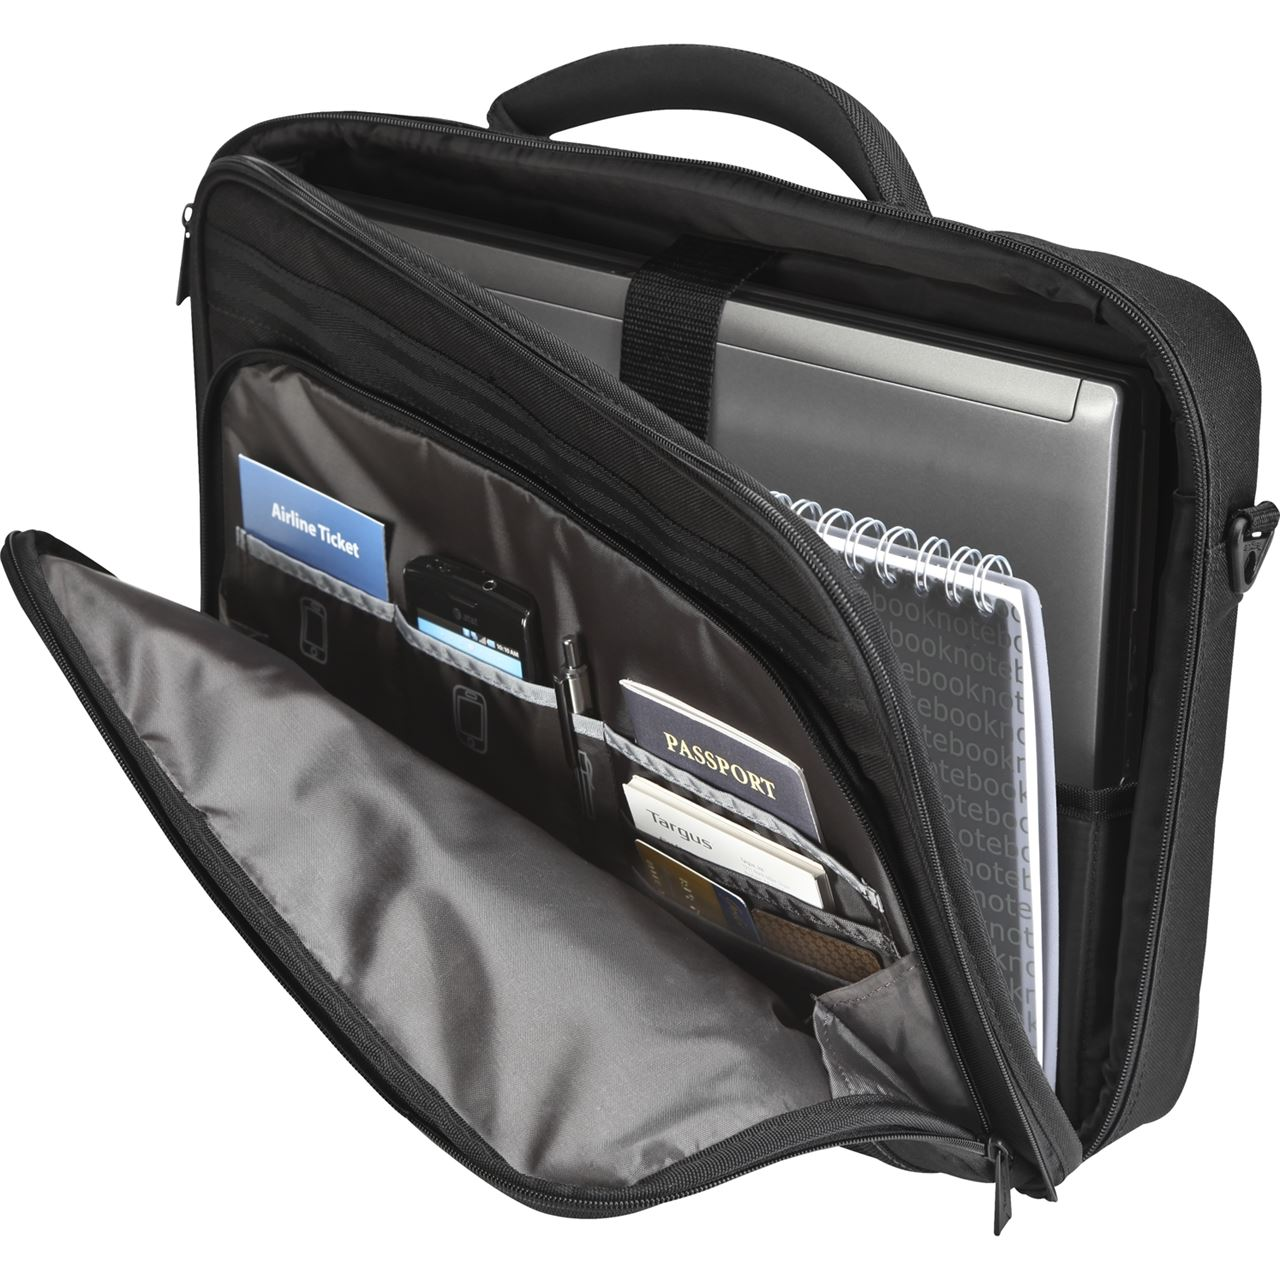 Targus Classic Clamshell Laptop Case Notebook Carrying